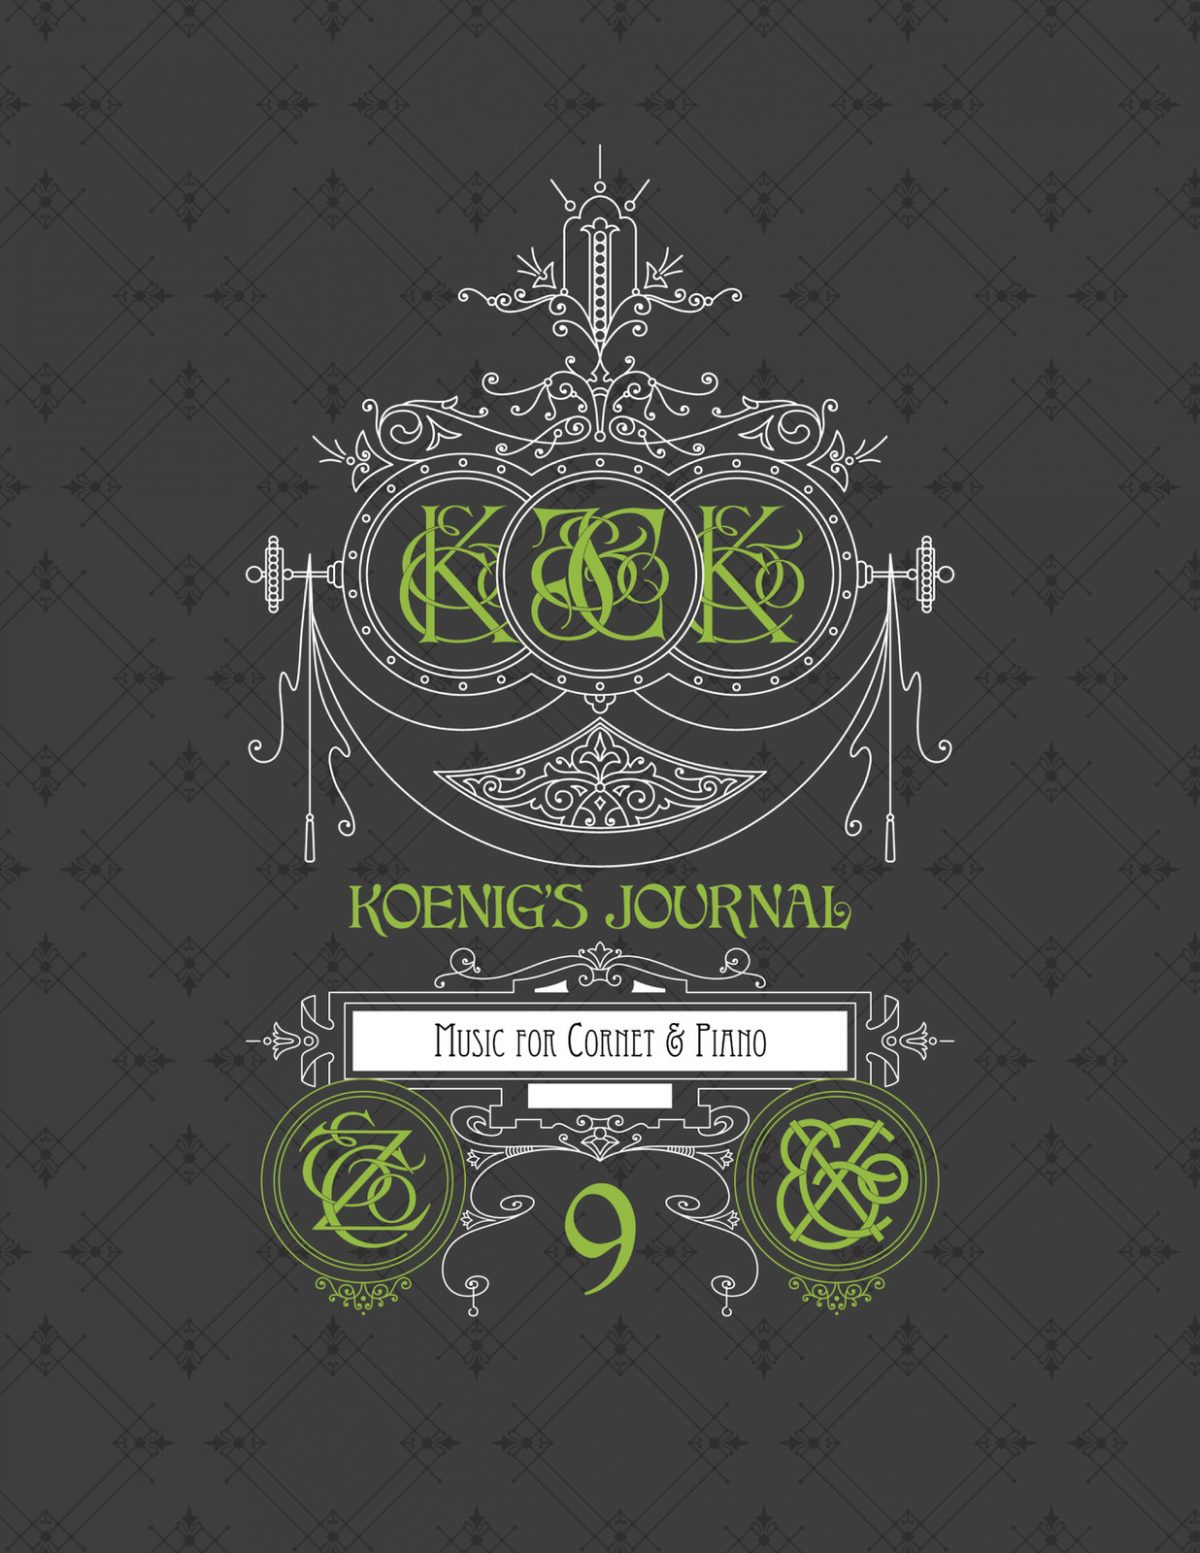 Koenig's Journal Vol.9 (Part and Score)